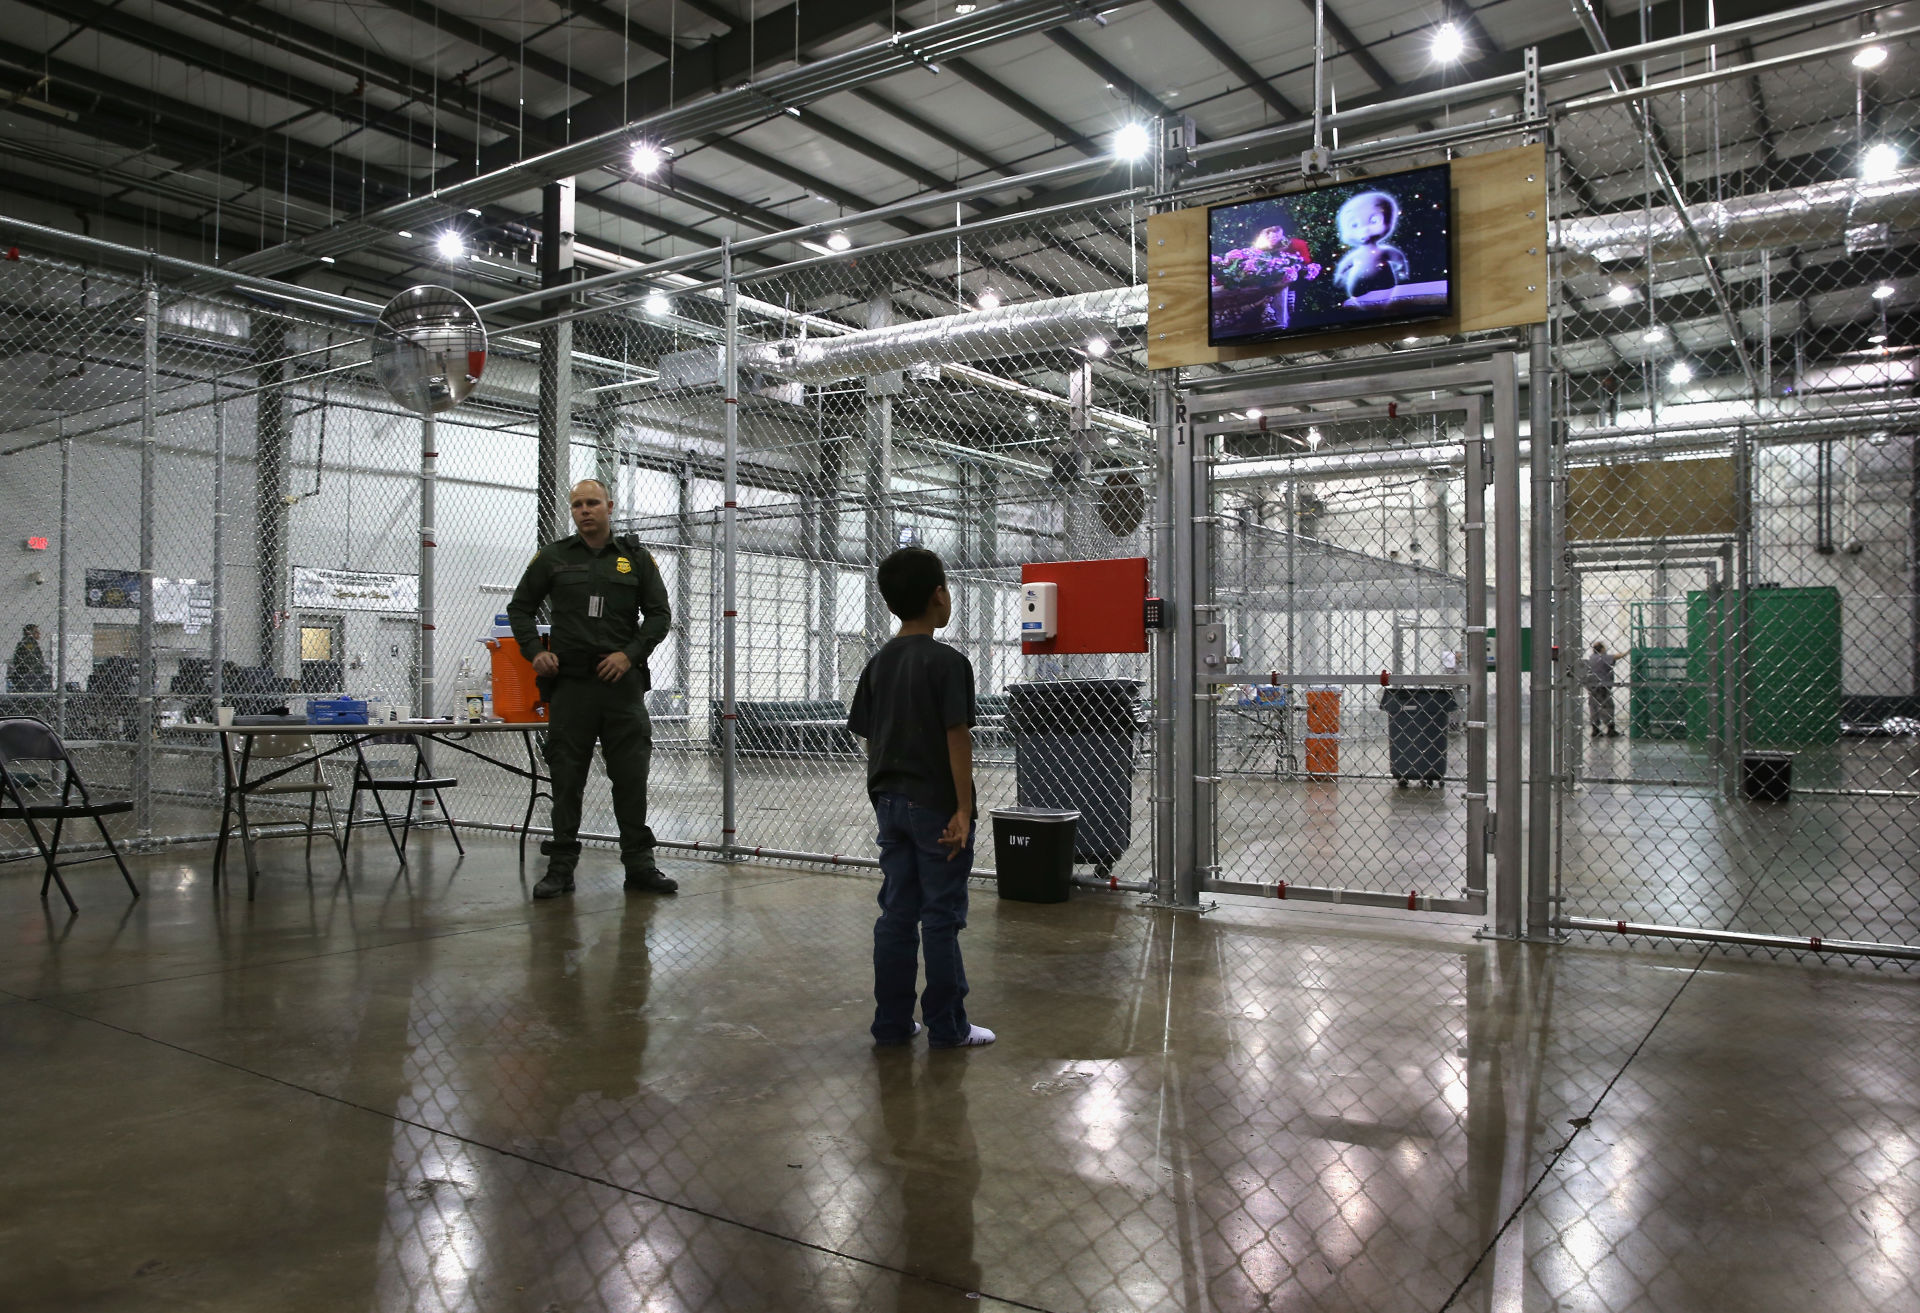 Judge rules U.S. government must swiftly release immigrant children in detention